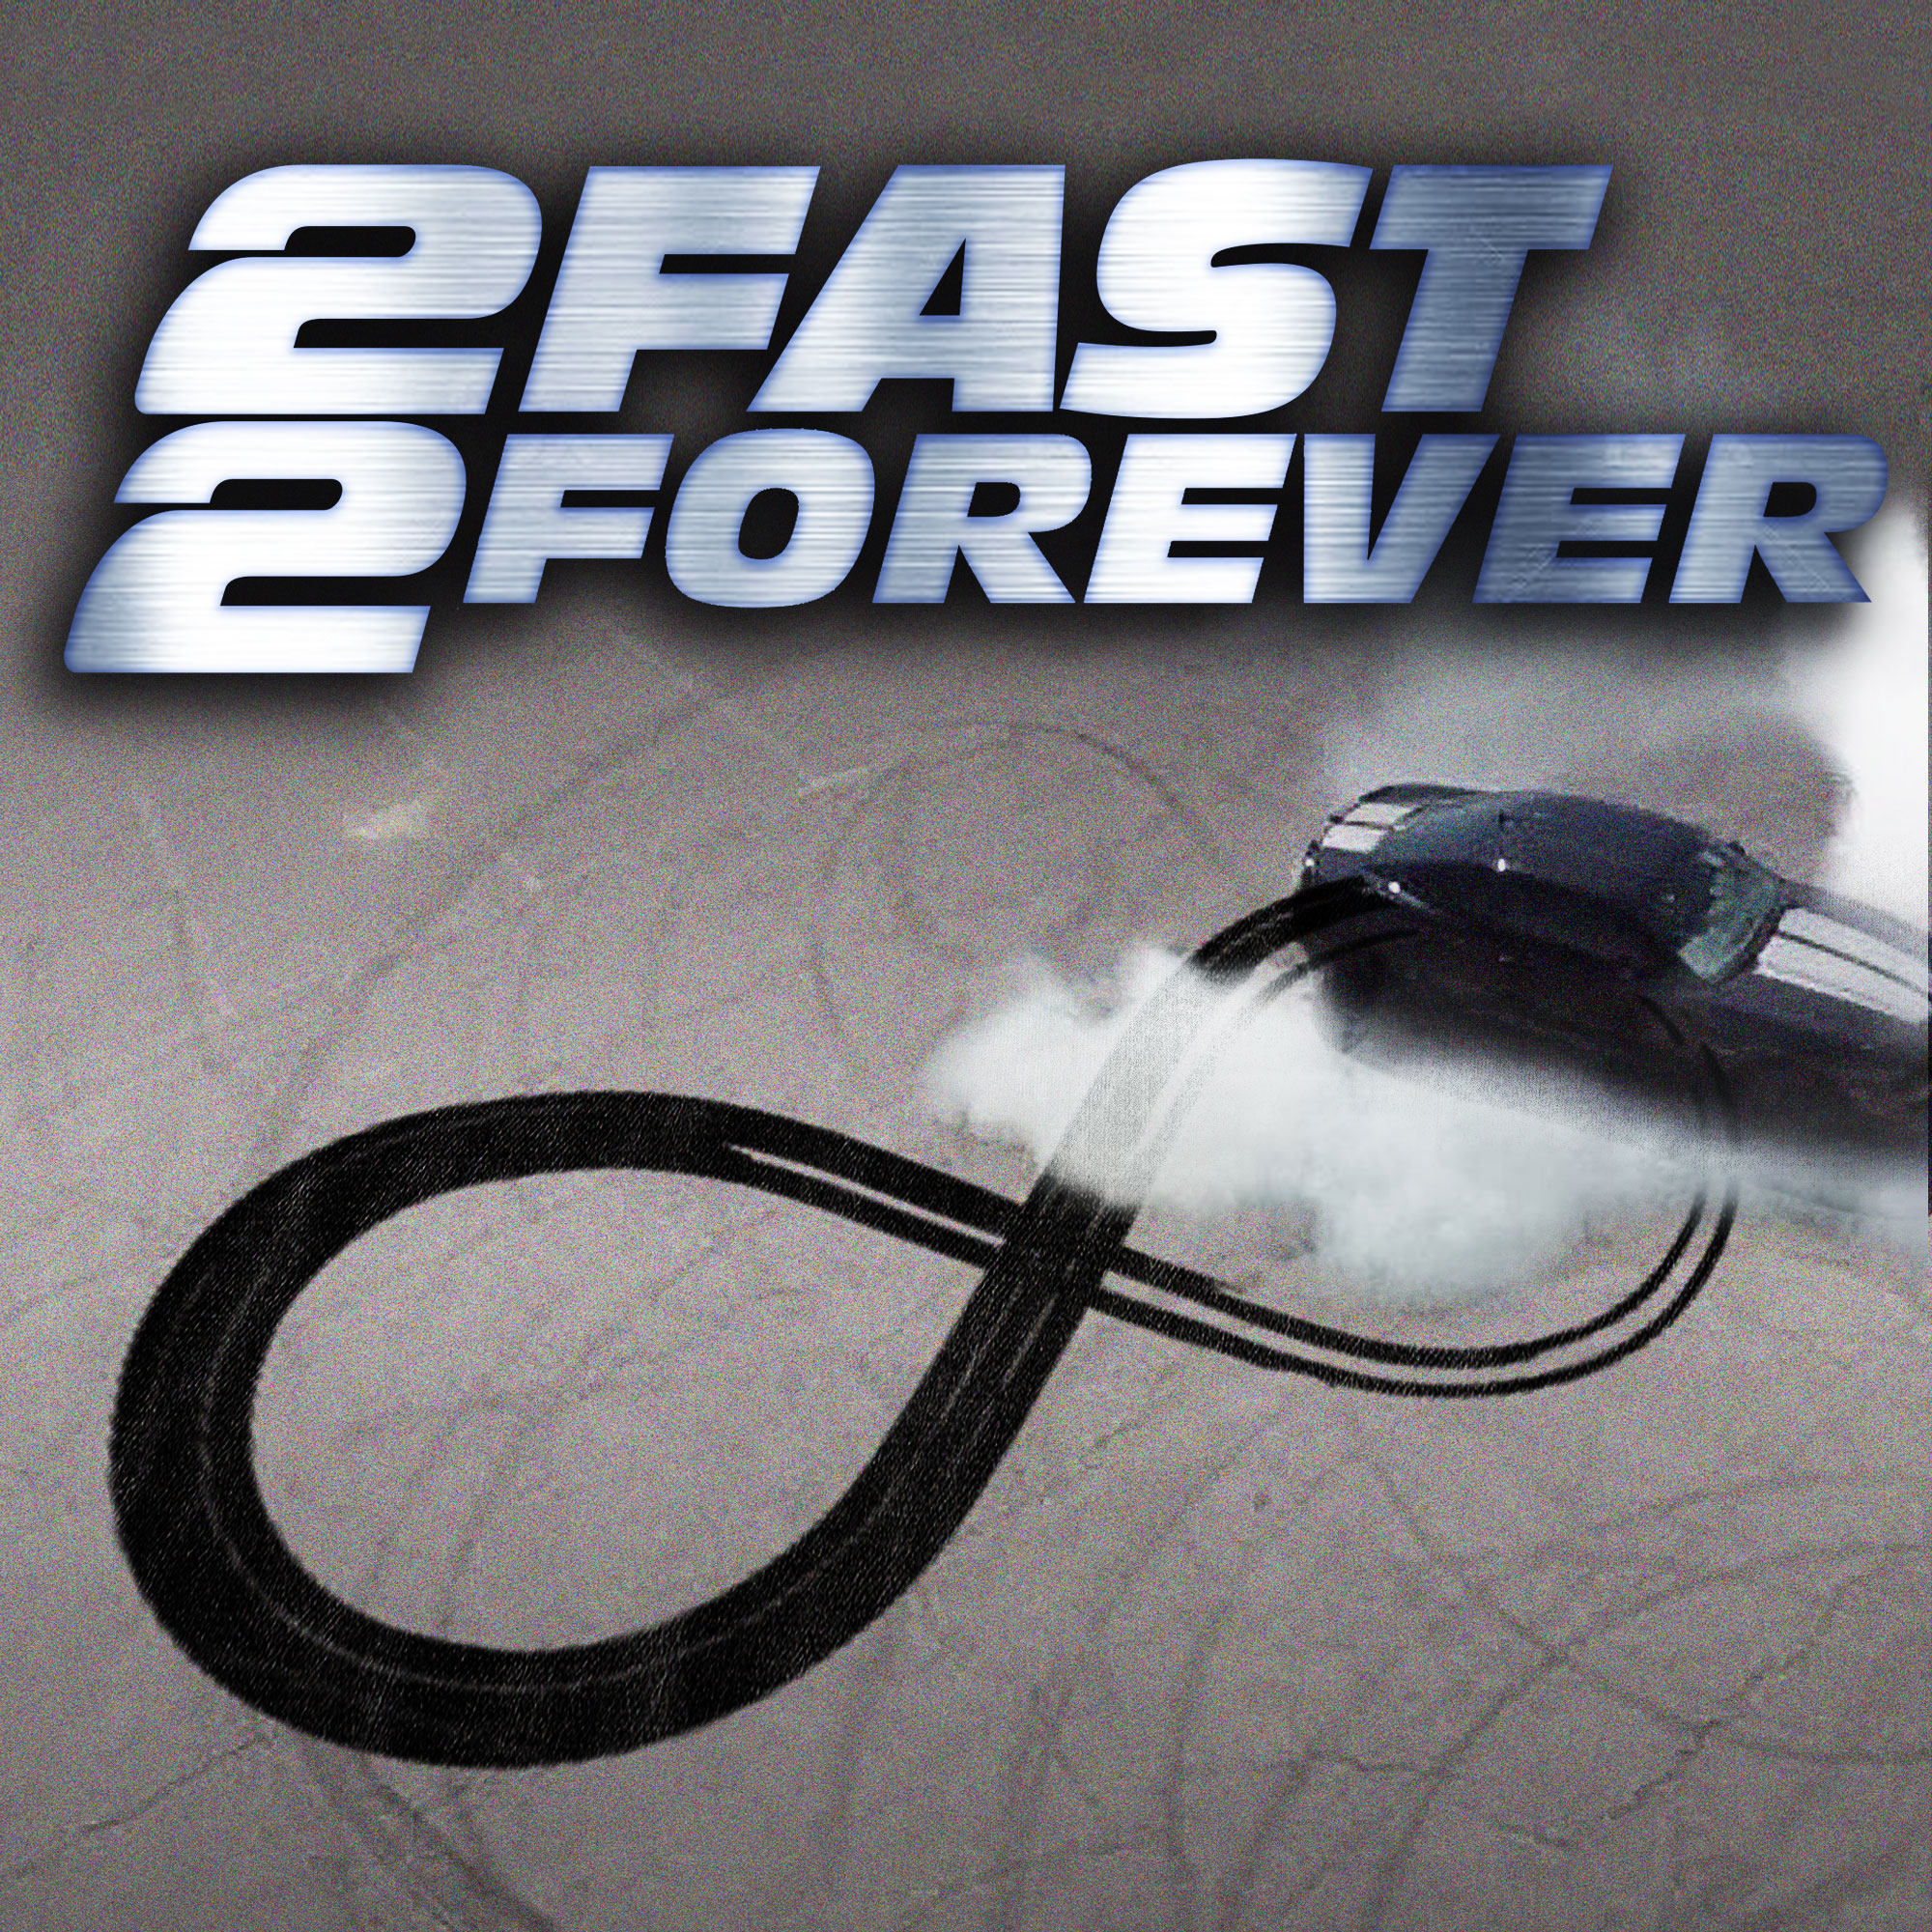 2 Fast 2 Forever